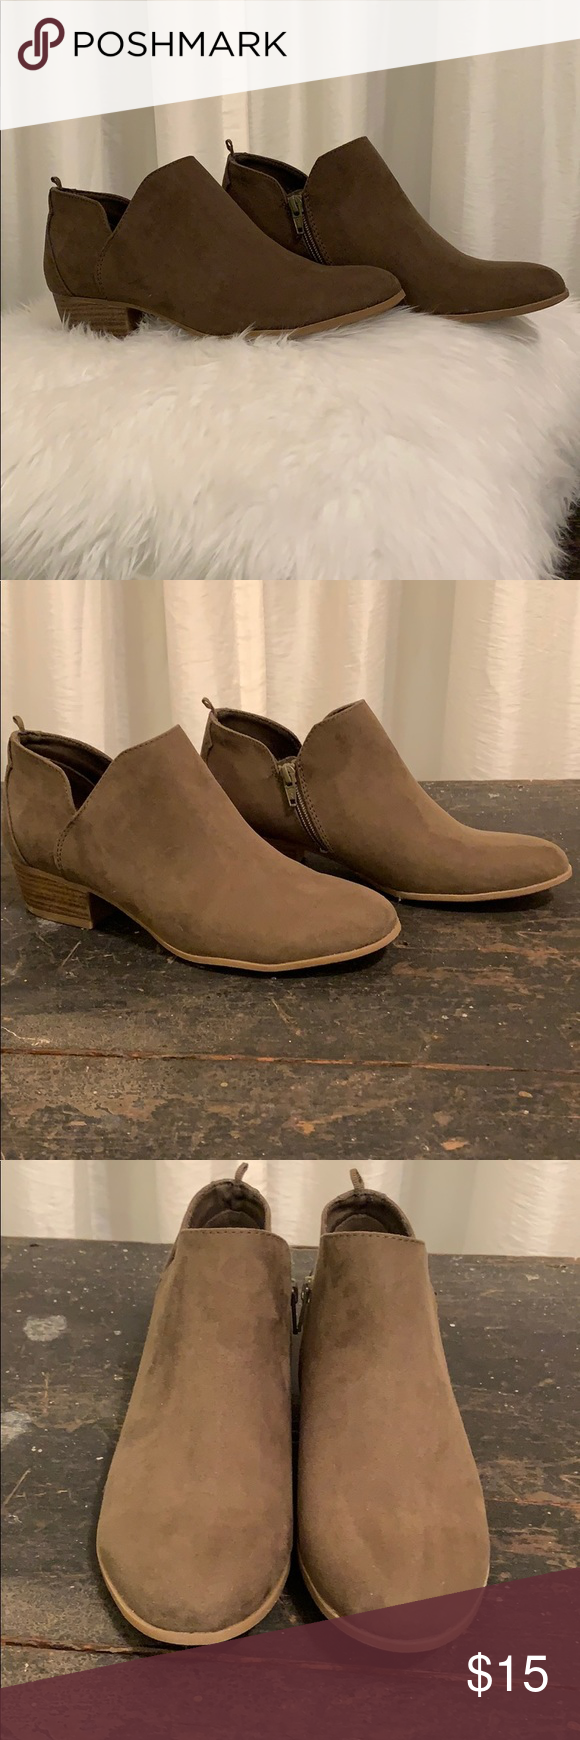 Olive Green Old Navy Booties Only worn a couple of times. In great condition and perfect for fall with a pair of skinny jeans. Old Navy Shoes Ankle Boots & Booties #skinnyjeansandankleboots